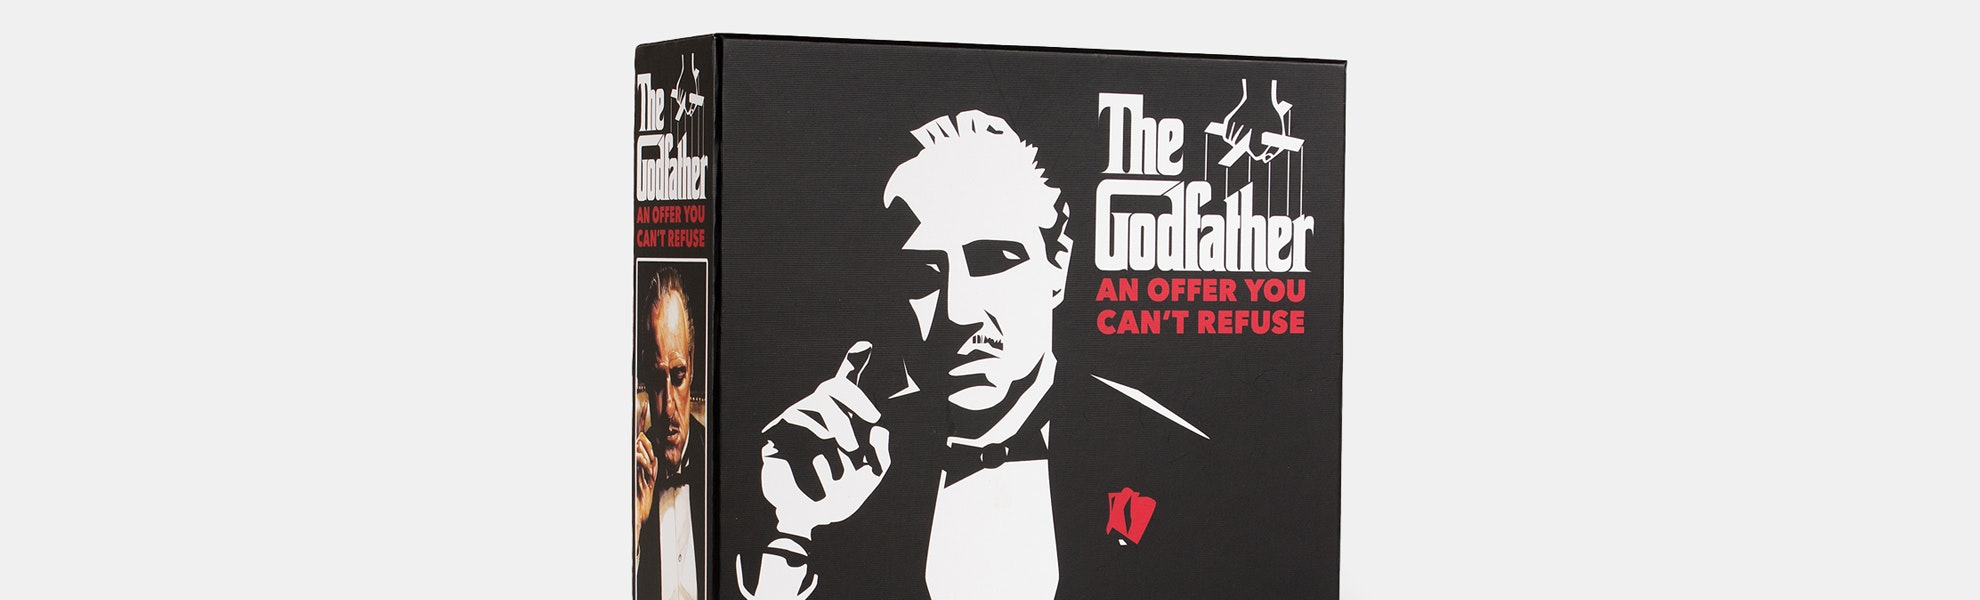 The Godfather Board Game Bundle